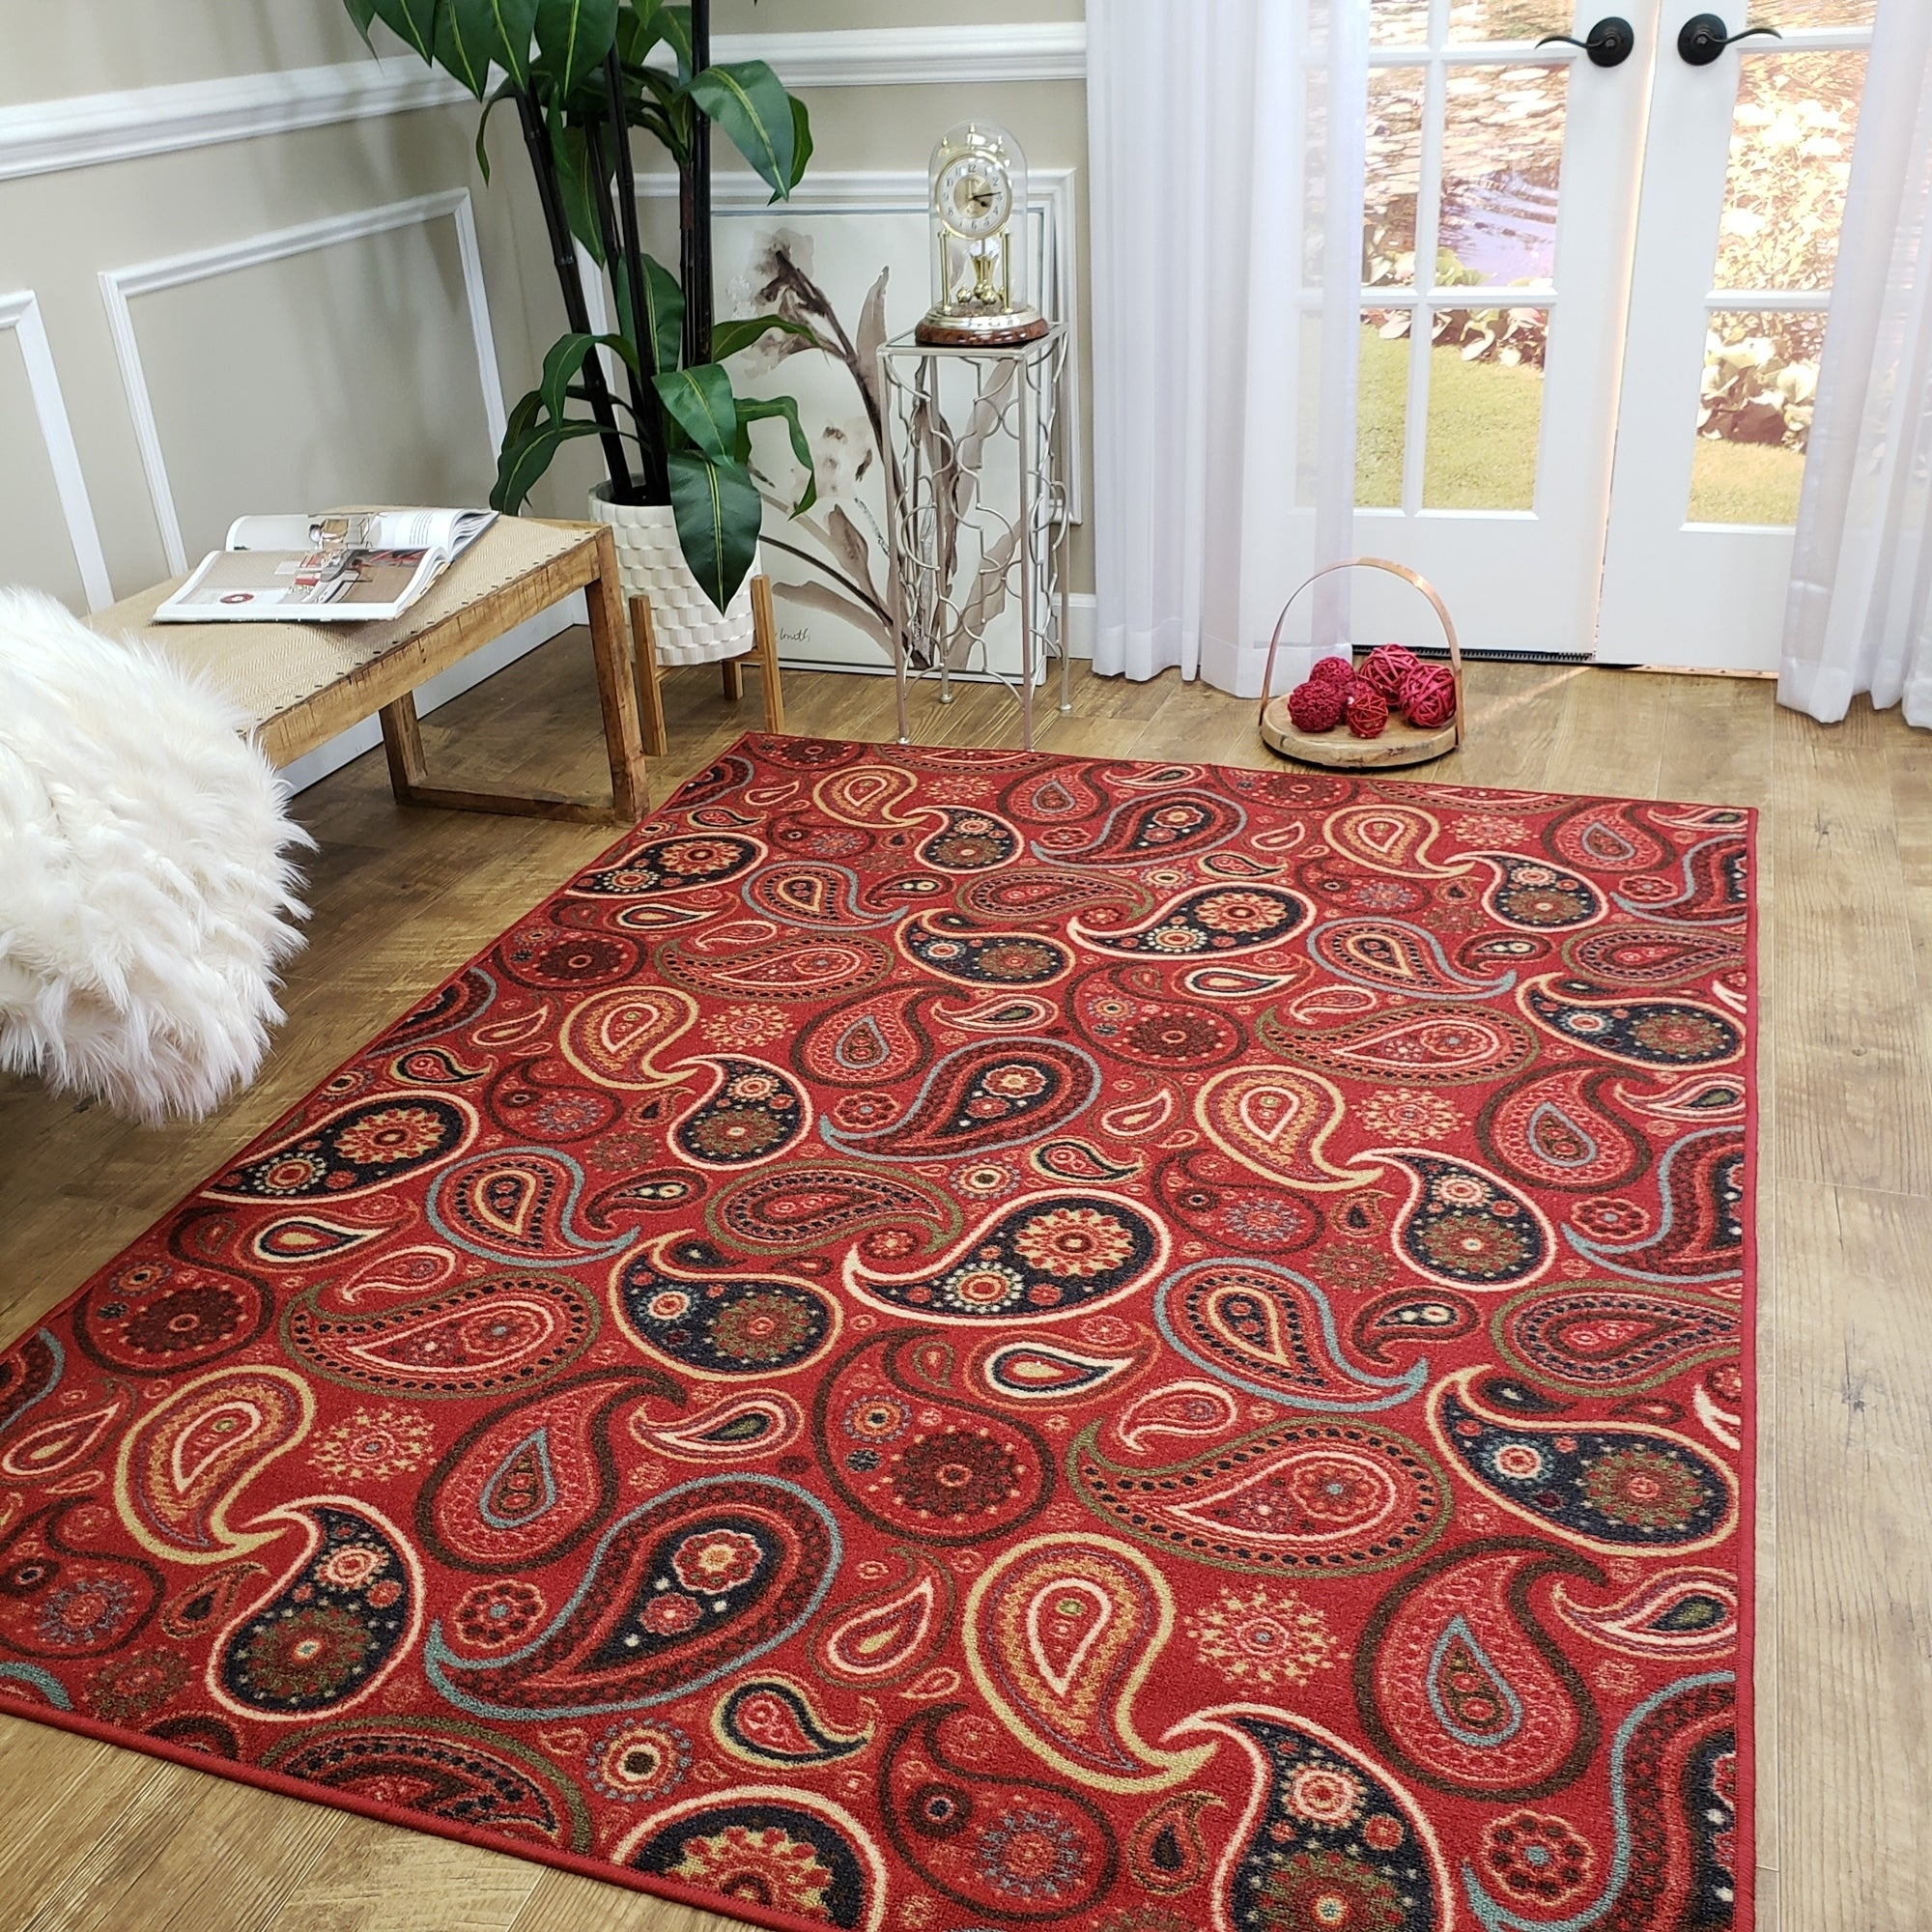 Rubber Back Red Paisley Floral Non-Skid Area Rug (5' x 6'6) at Sears.com